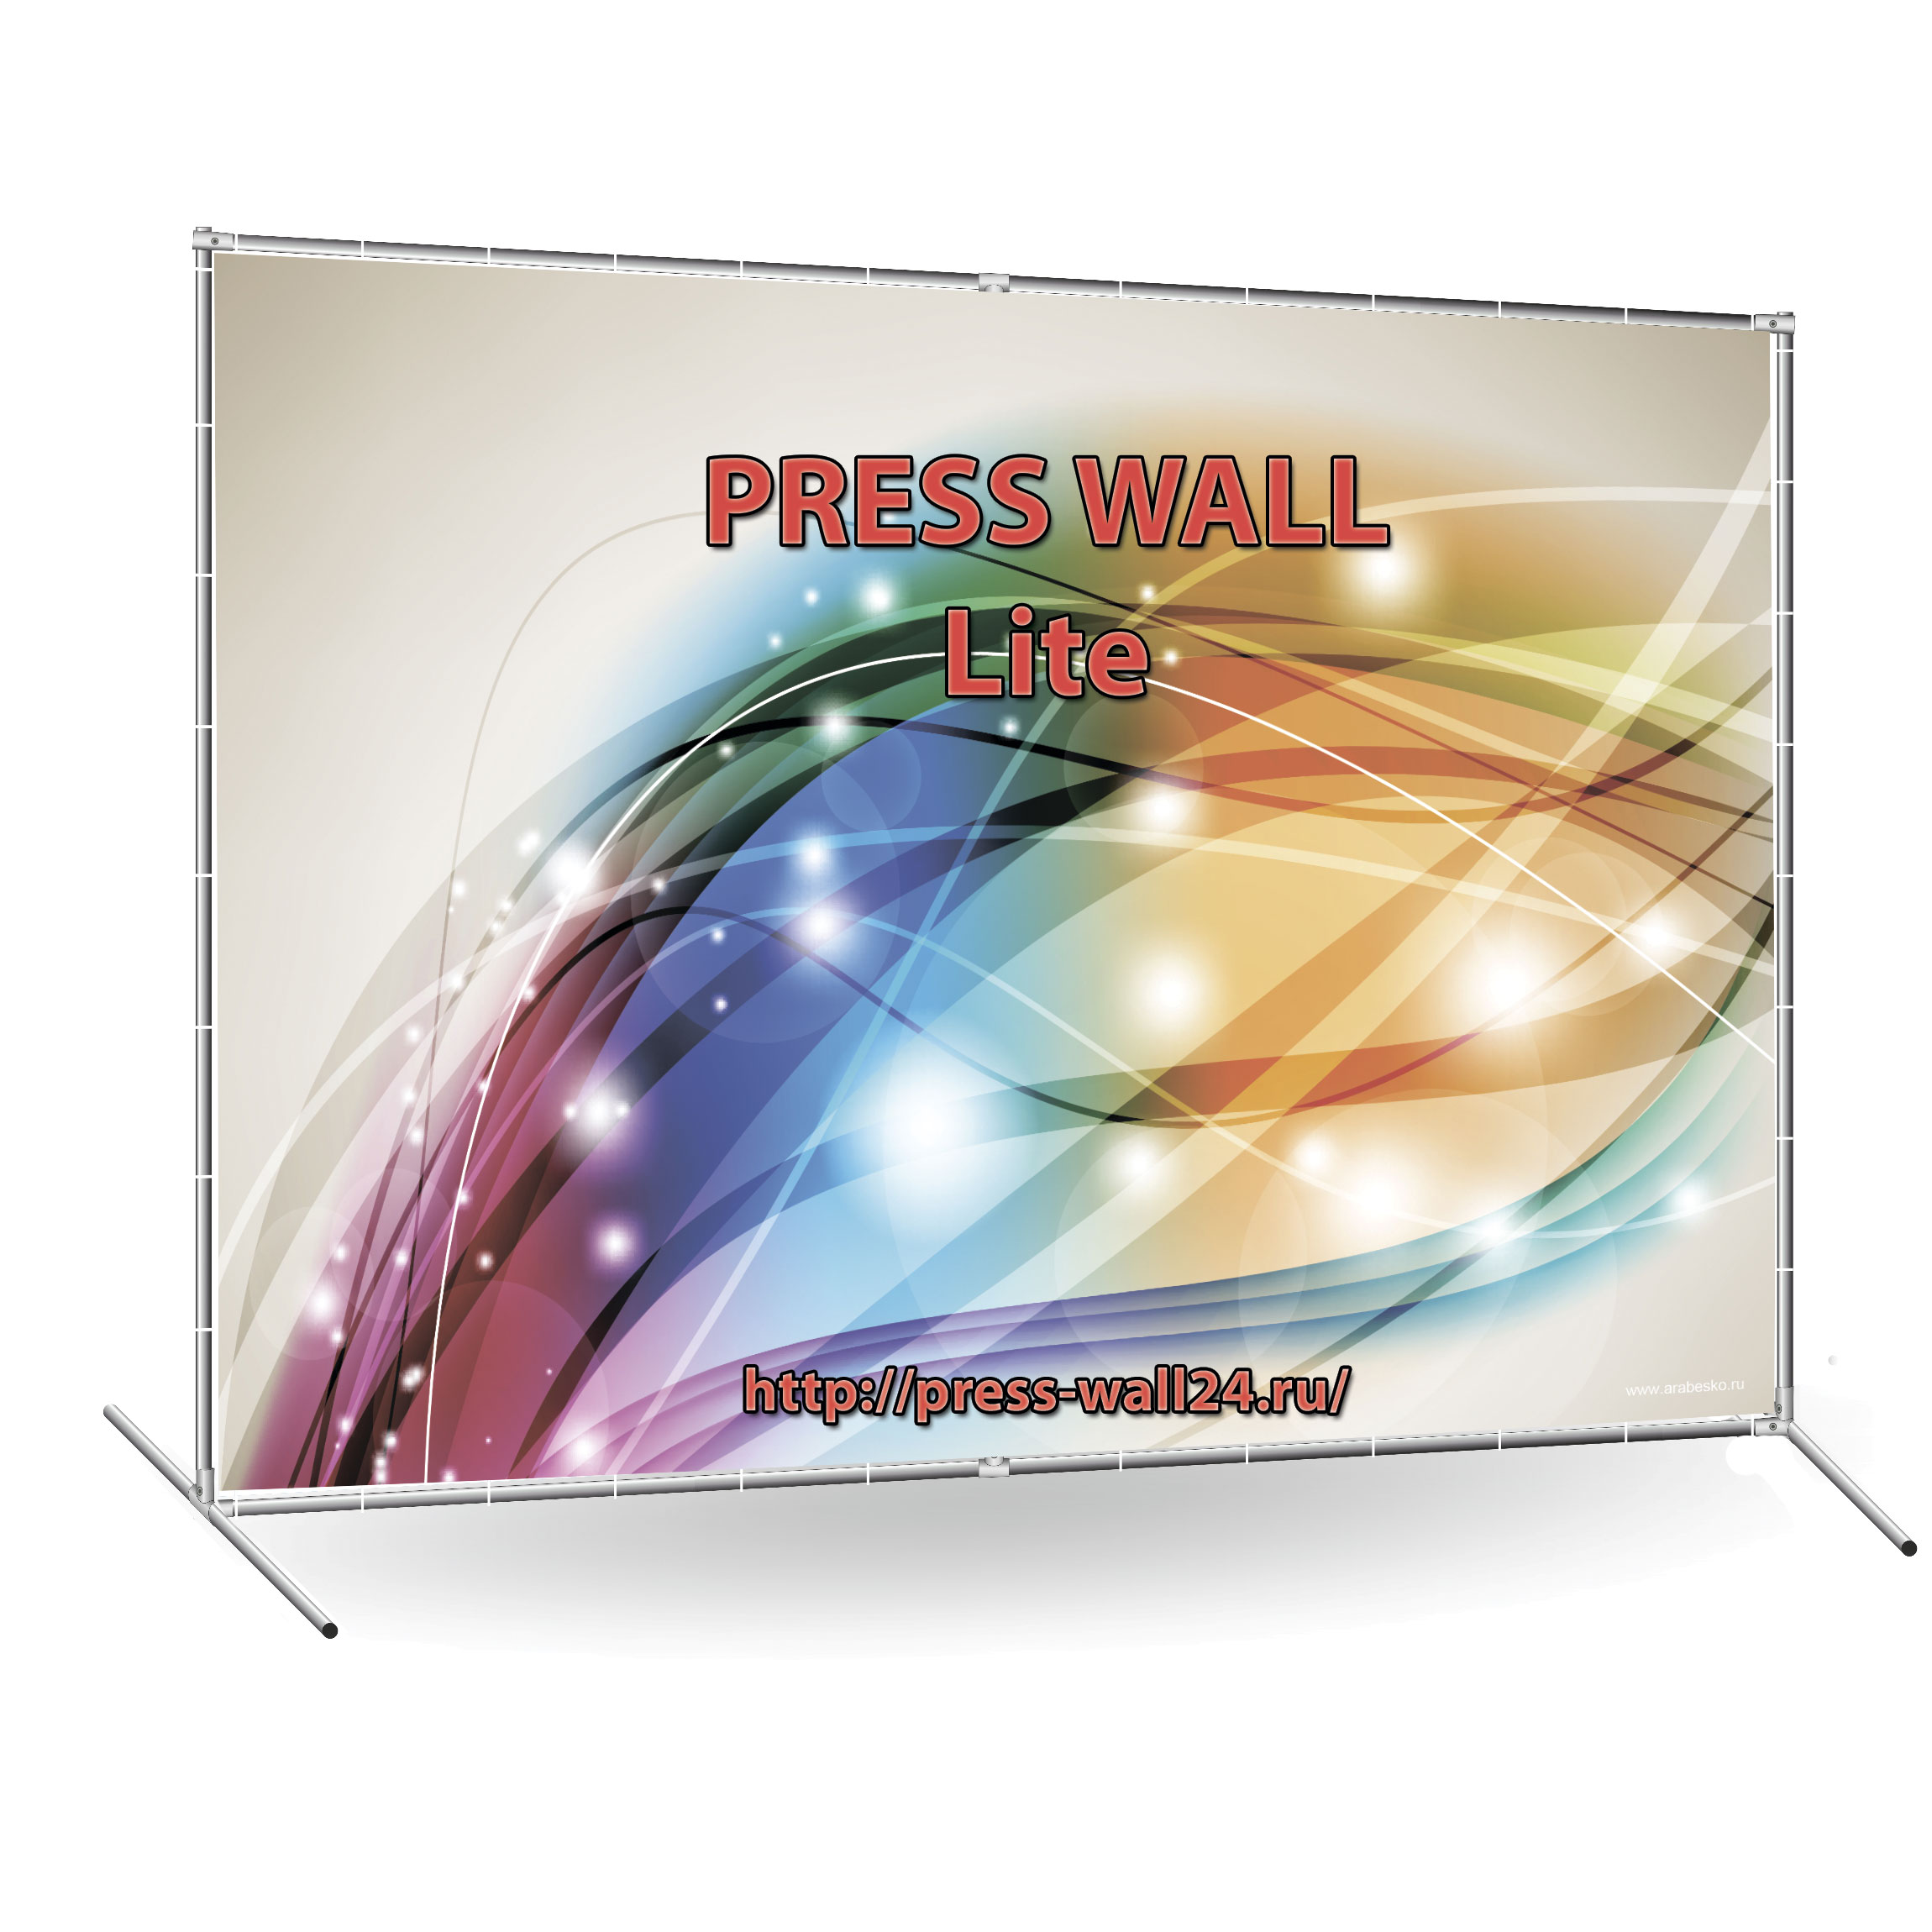 Press wall Lite